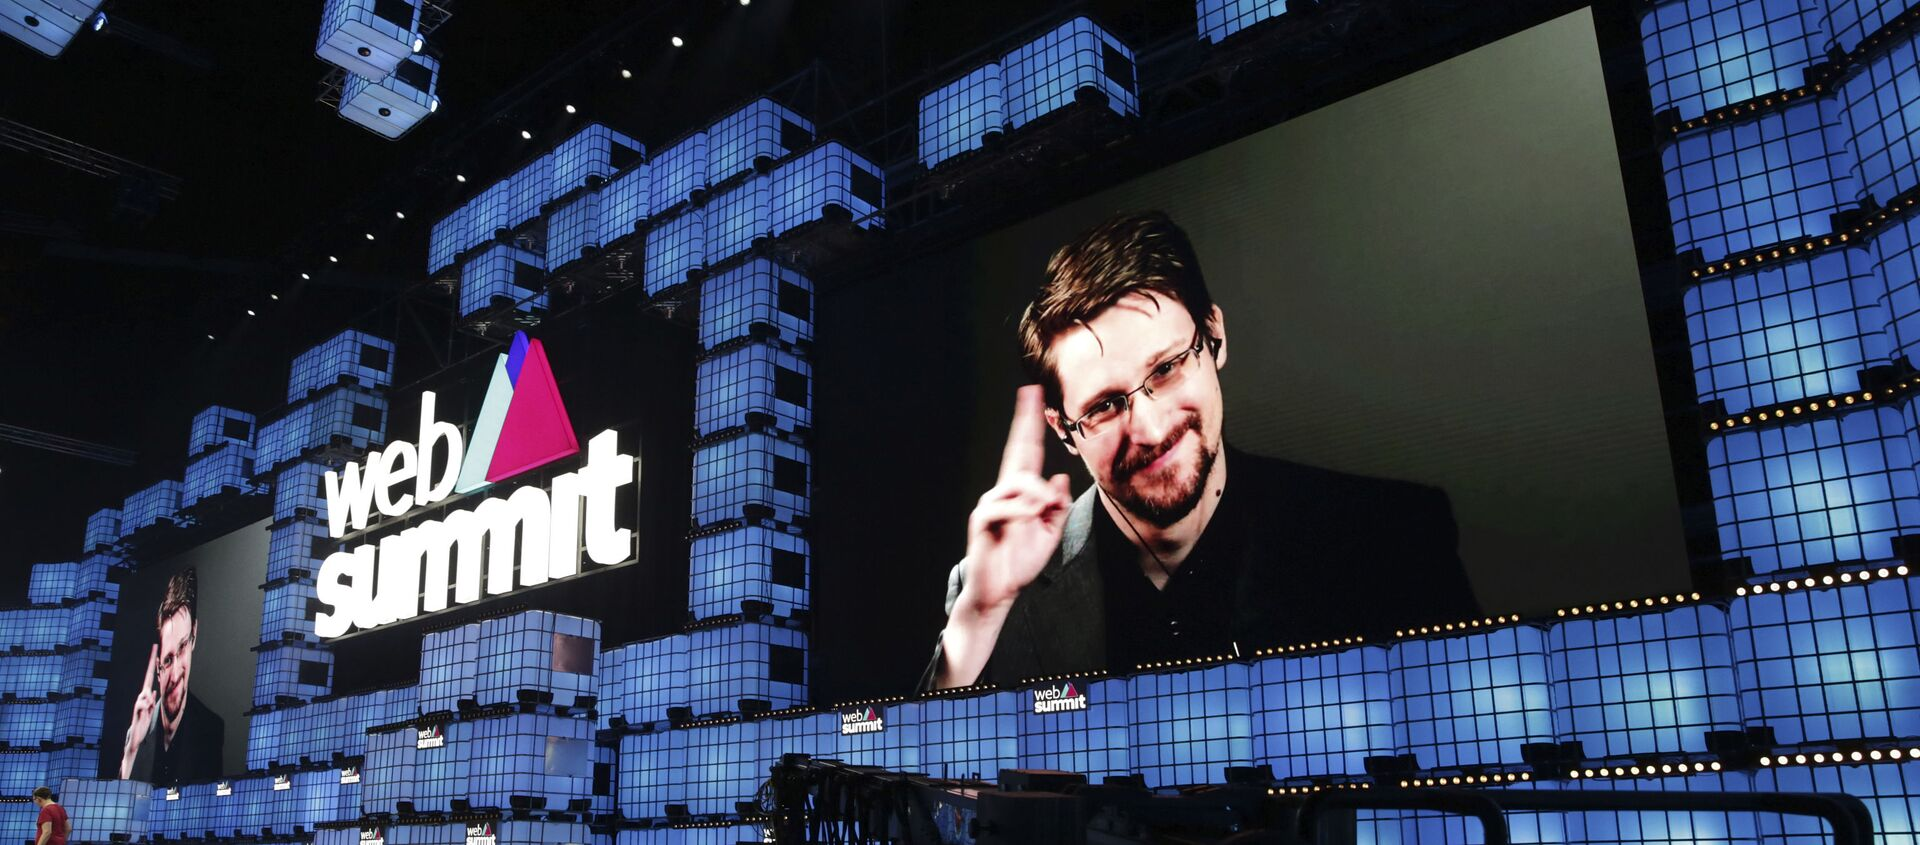 Former U.S. National Security Agency contractor Edward Snowden addresses attendees through video link at the Web Summit technology conference in Lisbon, Monday, Nov. 4, 2019. Snowden has been living in Russia to escape U.S. prosecution after leaking classified documents detailing government surveillance programs - Sputnik International, 1920